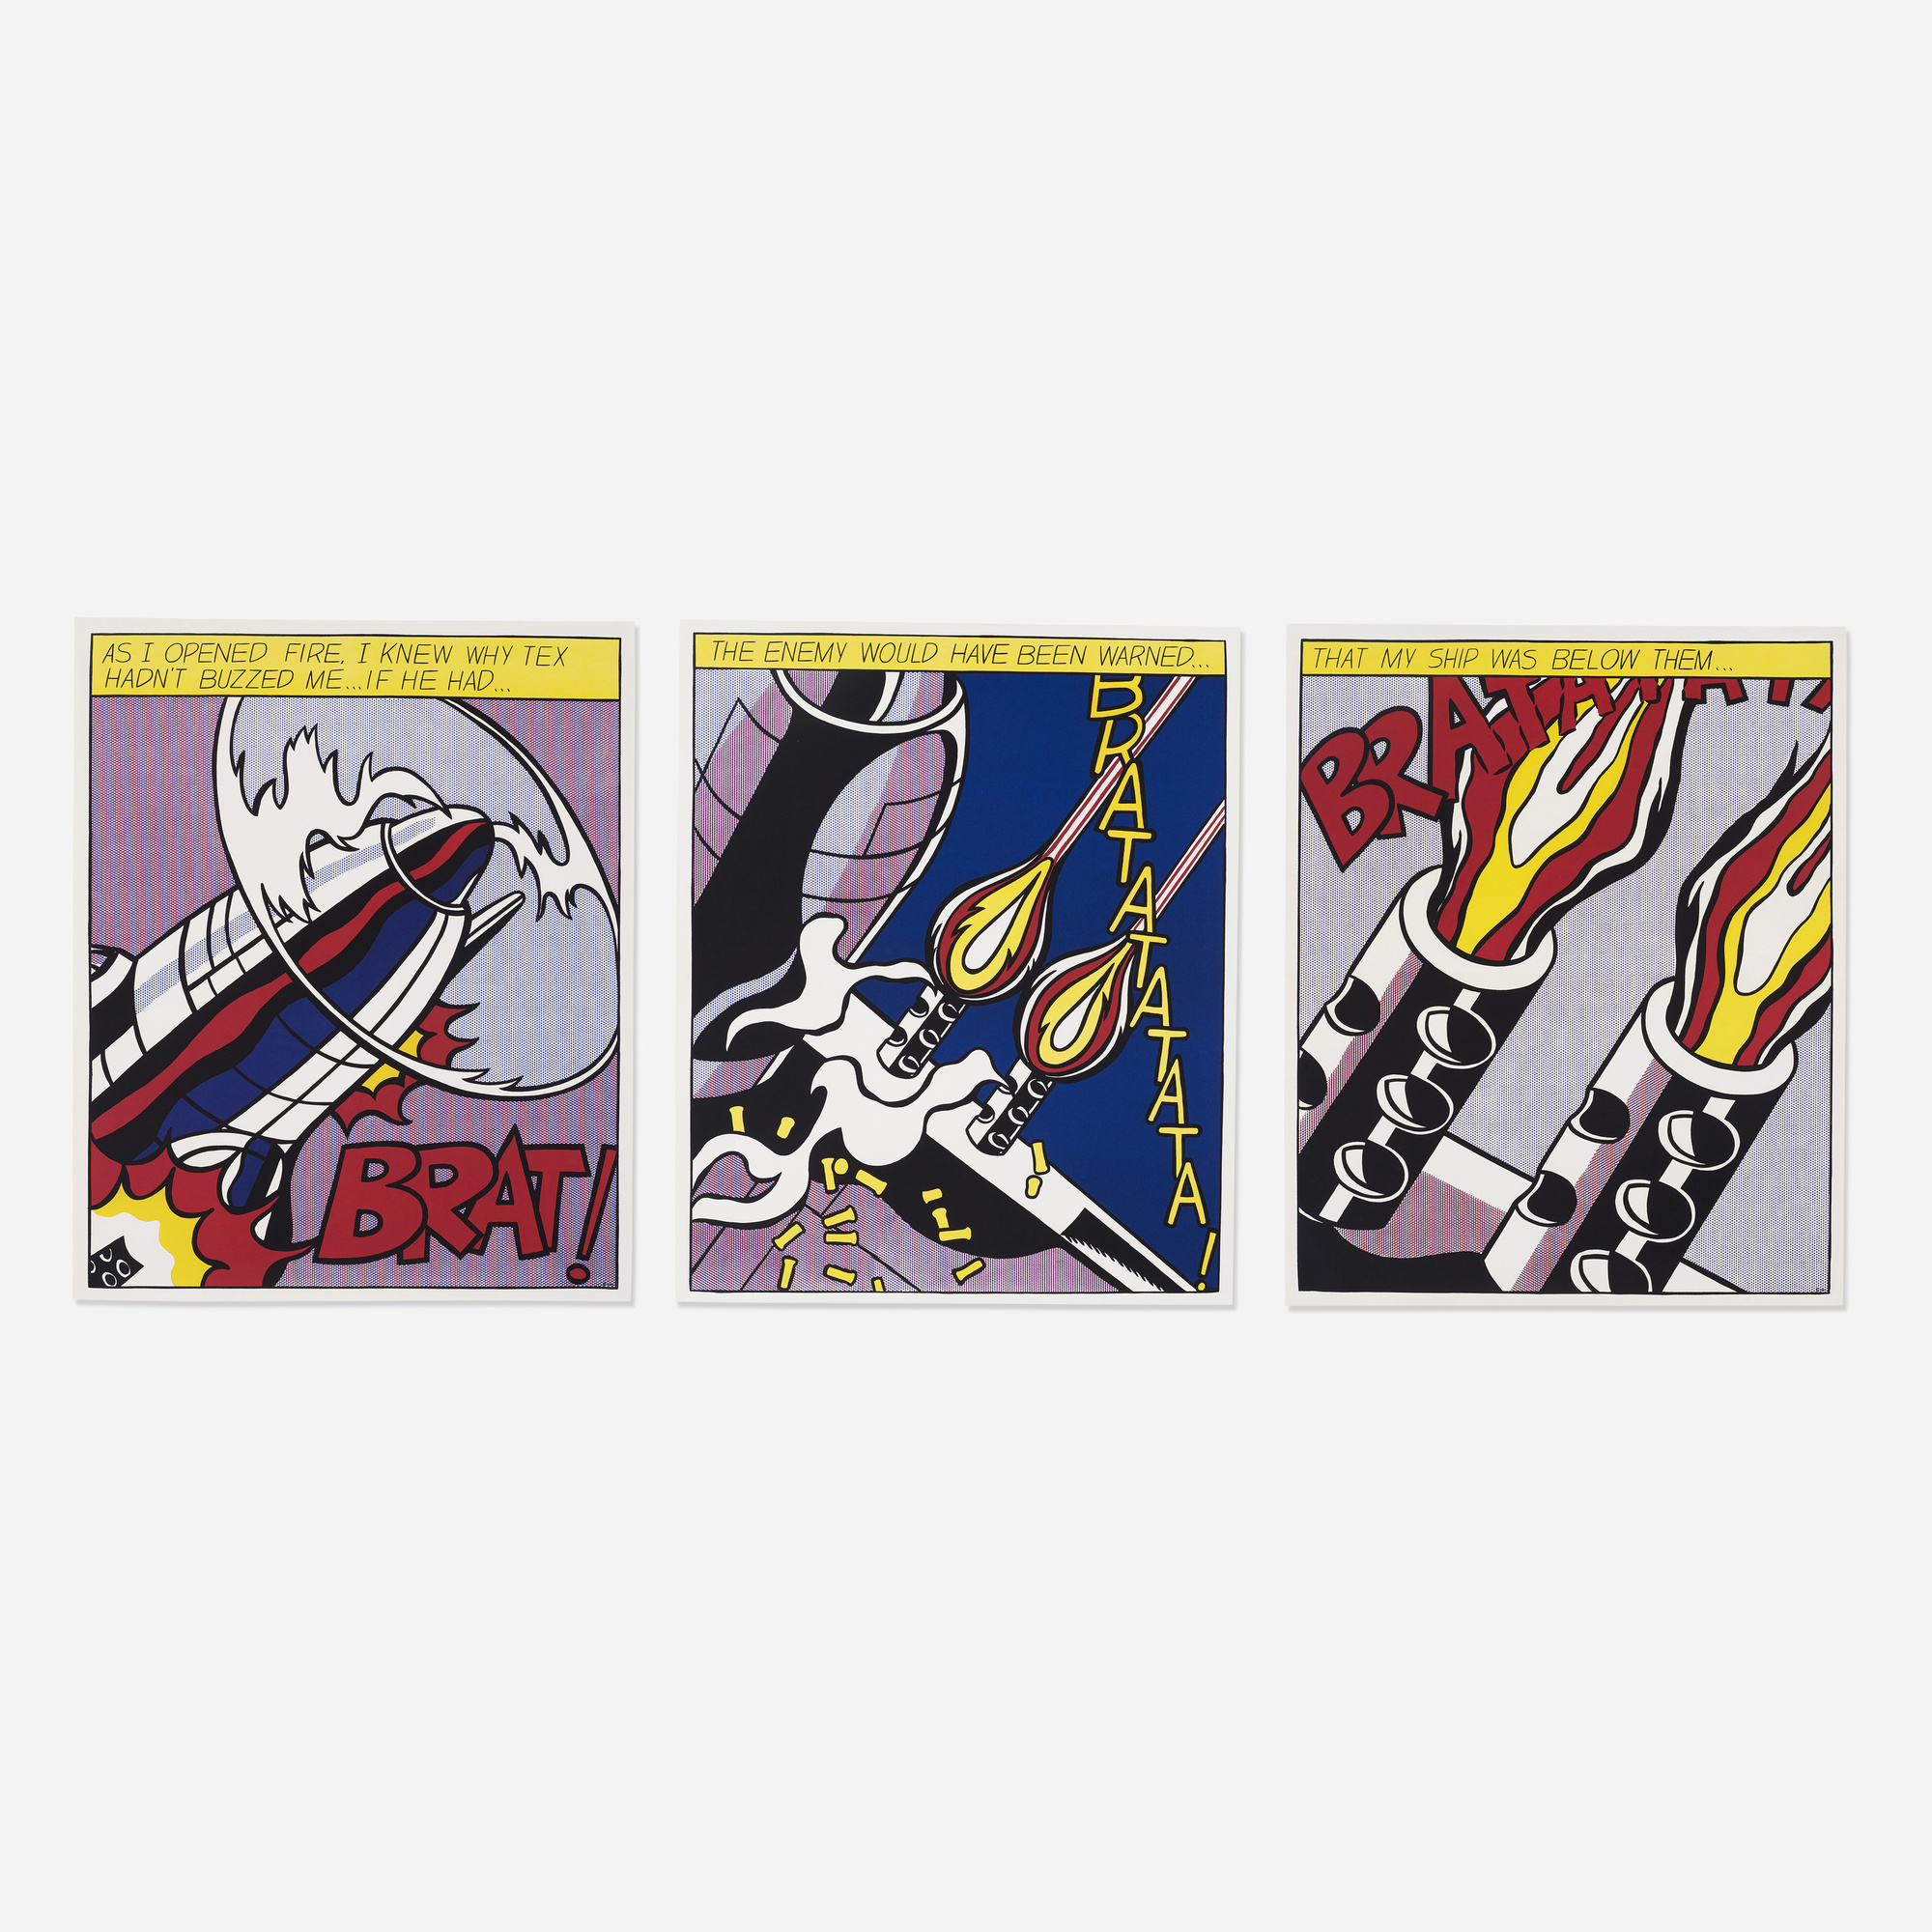 150: Roy Lichtenstein / As I Opened Fire poster (triptych) (1 of 1)